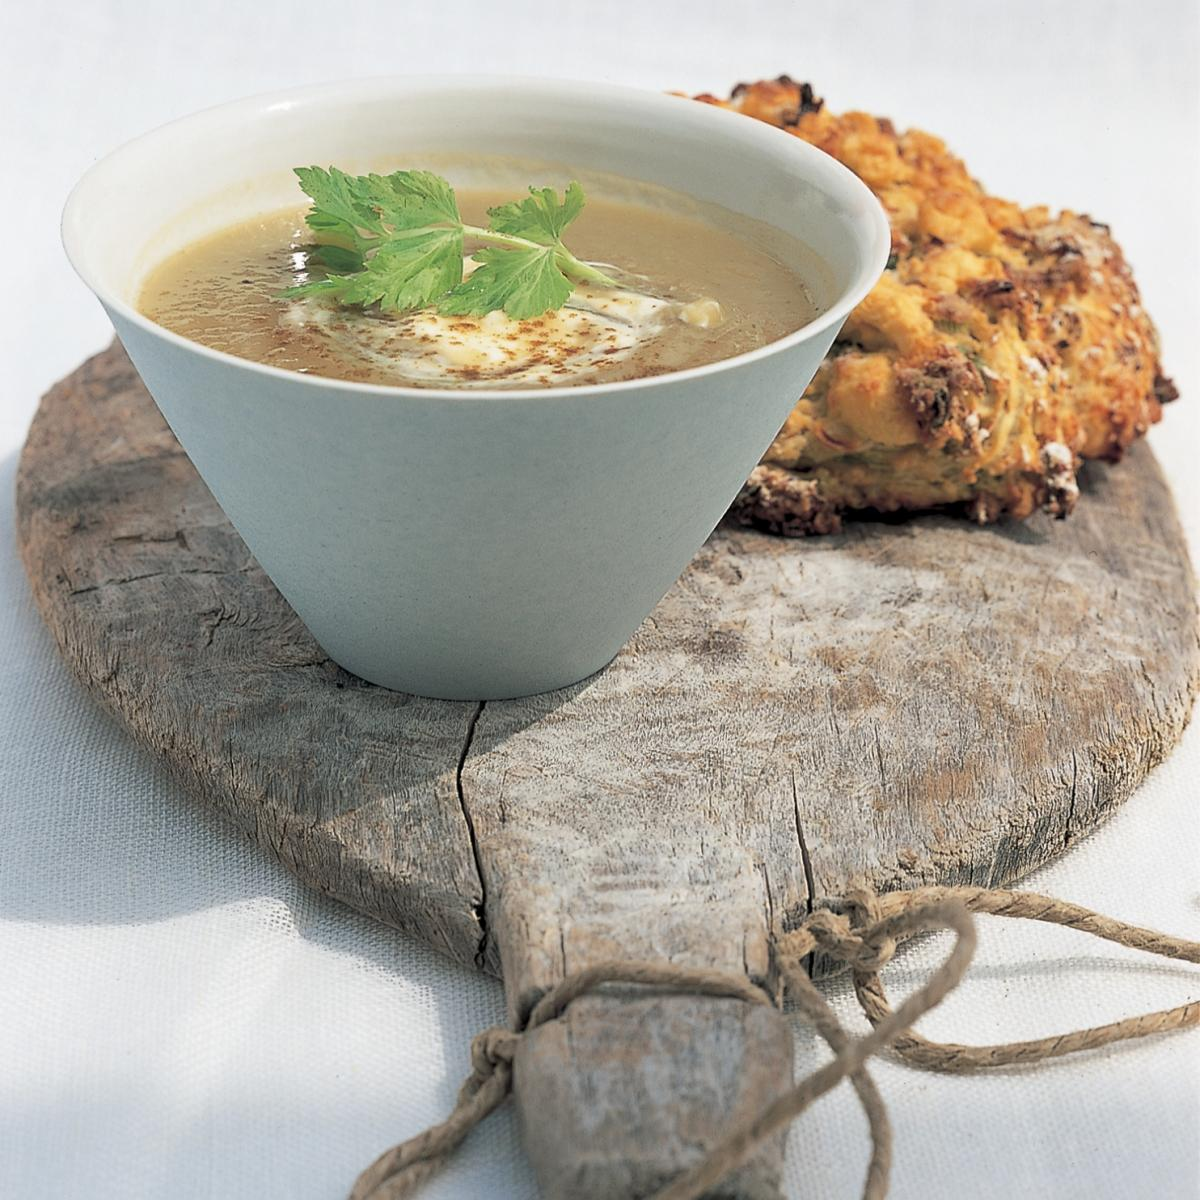 Soup slow cooked celery and celeriac soup